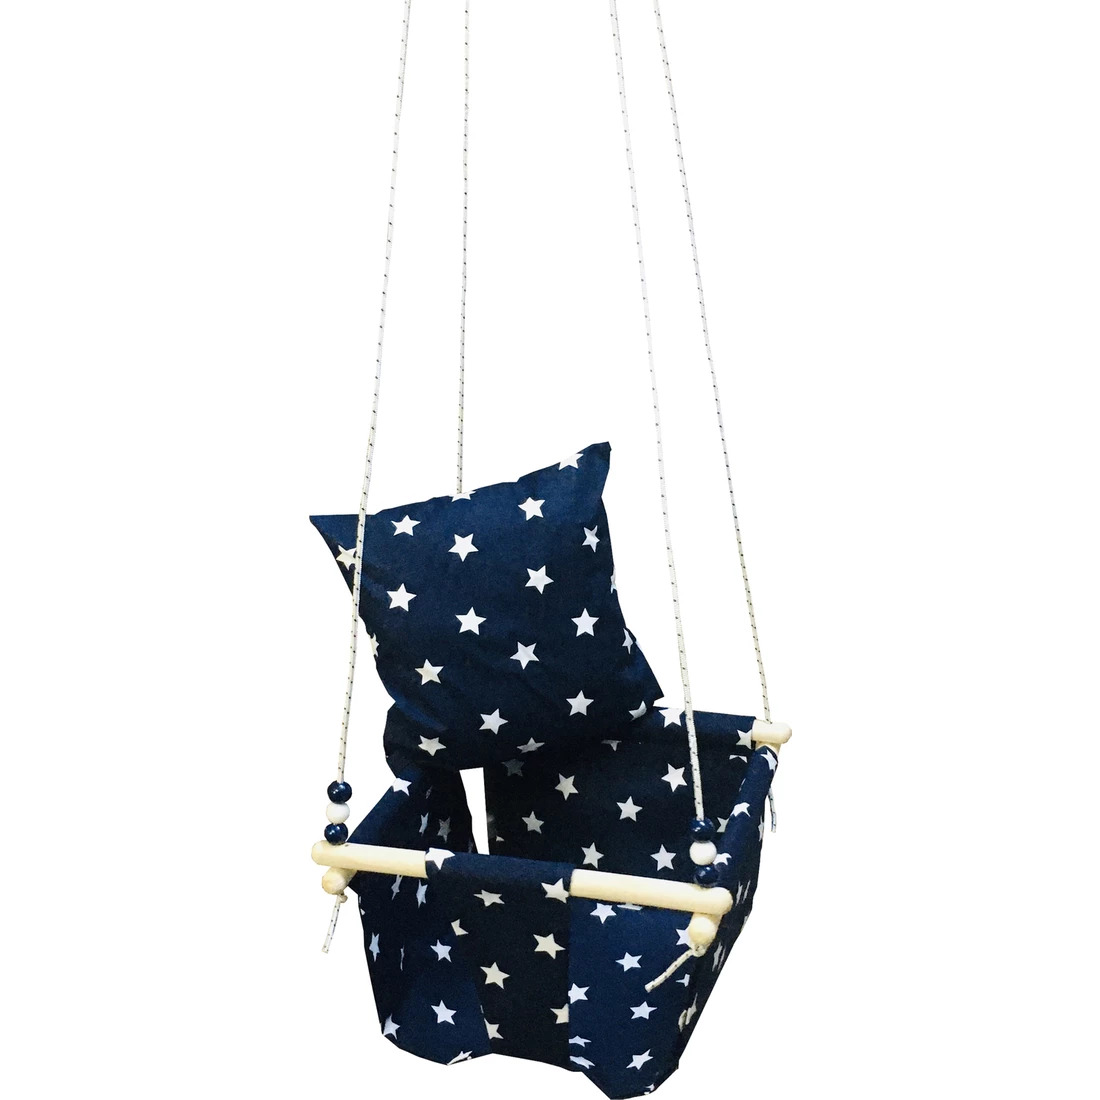 Baby Ceiling Swing Padded Chair Hanging Wood Canvas Child Toy Indoor Swinging Small Basket Colorful Rocking Hammock Safe Chair